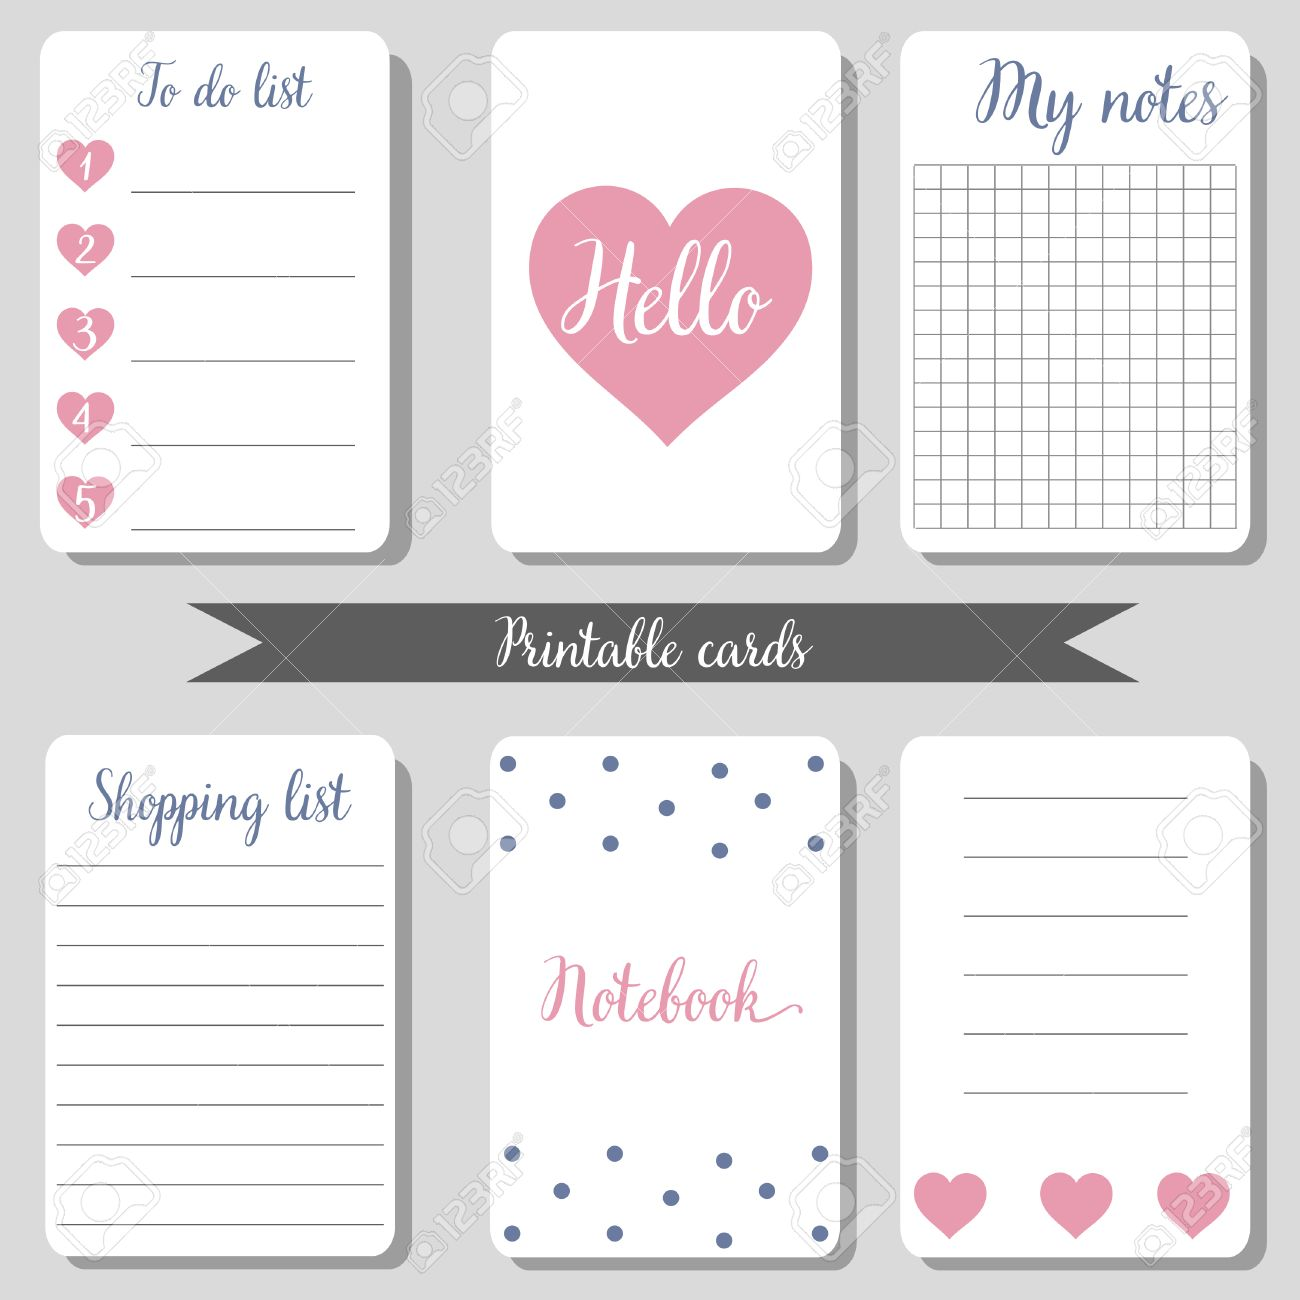 photo regarding Printable Notepad called Printable adorable style and design playing cards, buying listing, in direction of do listing, laptop computer,..